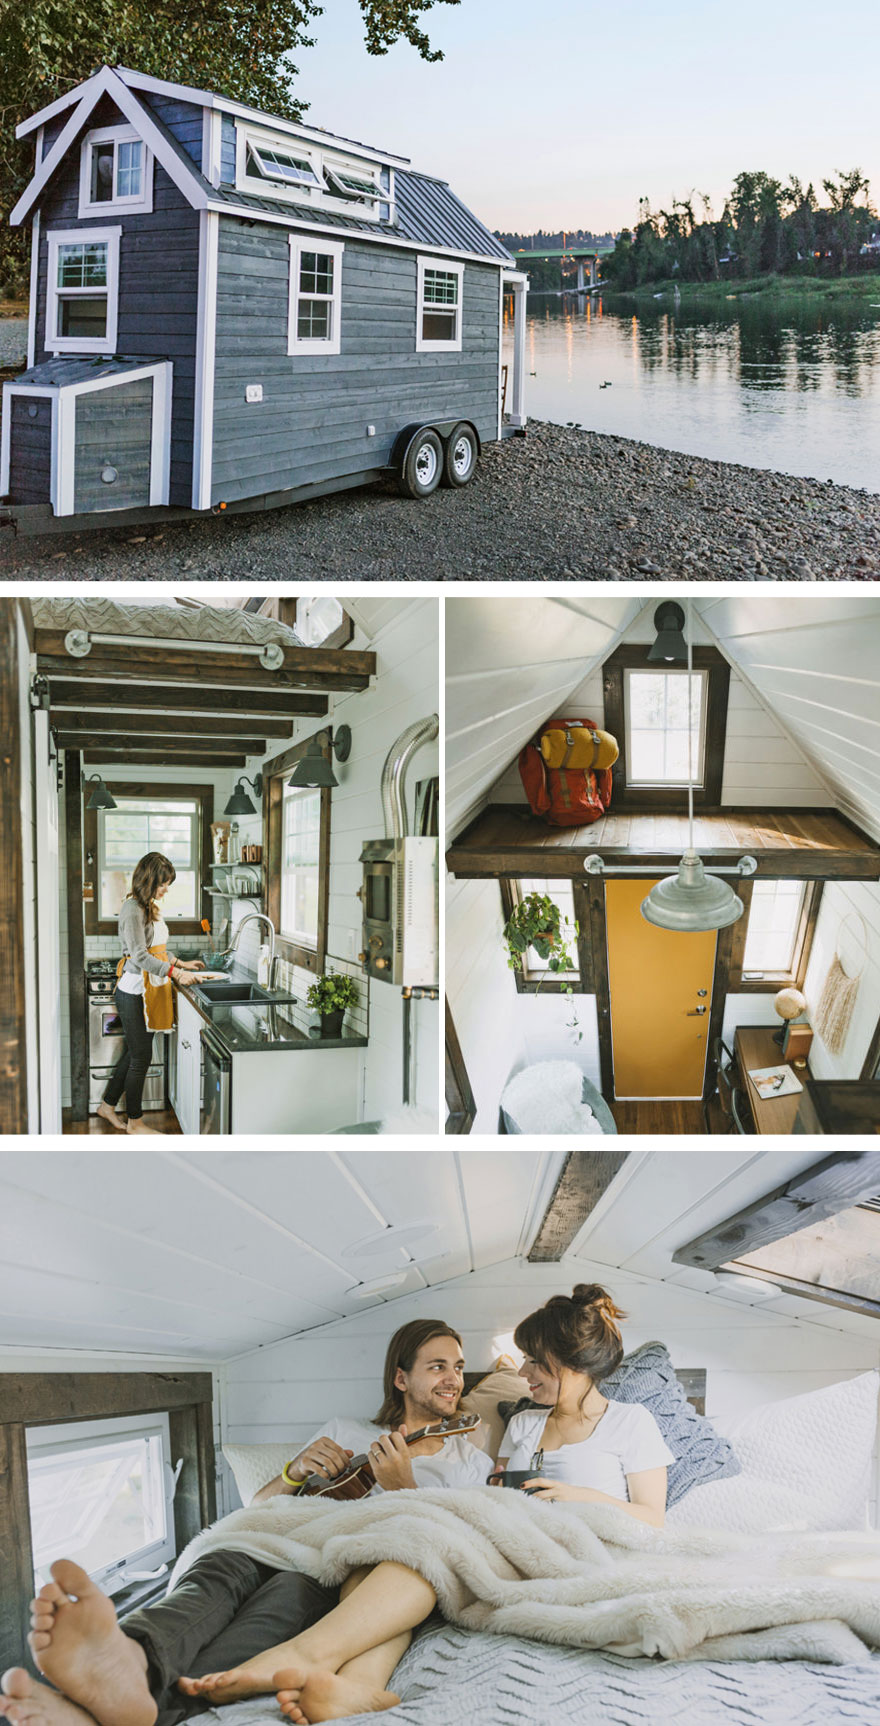 20 tiny homes that make the most of a little space bored panda 15 beautiful family home on wheels